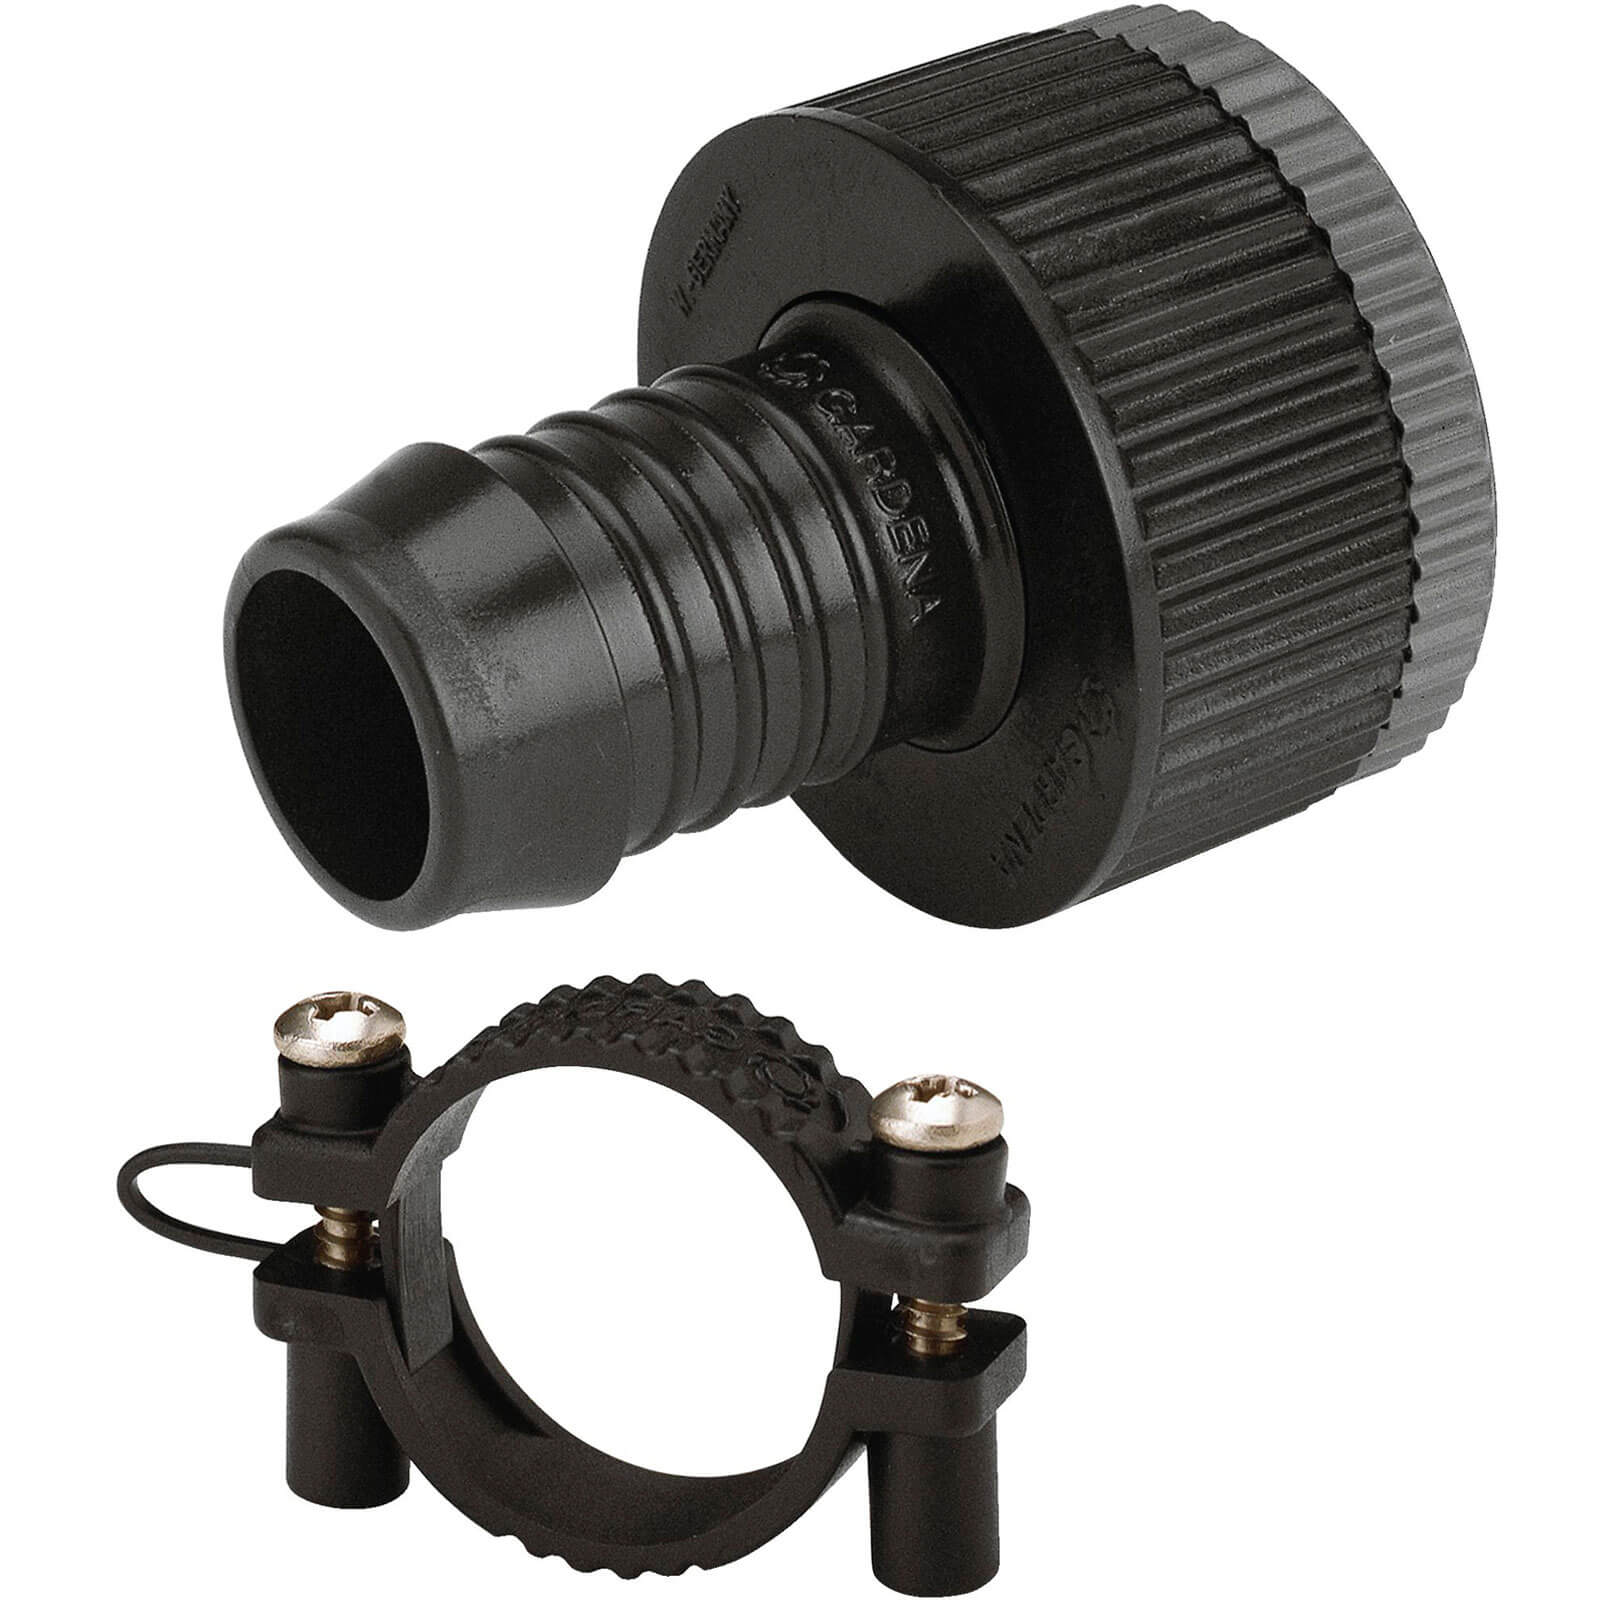 Gardena SPRINKLER SYSTEM Adapter Piece Set for Taps